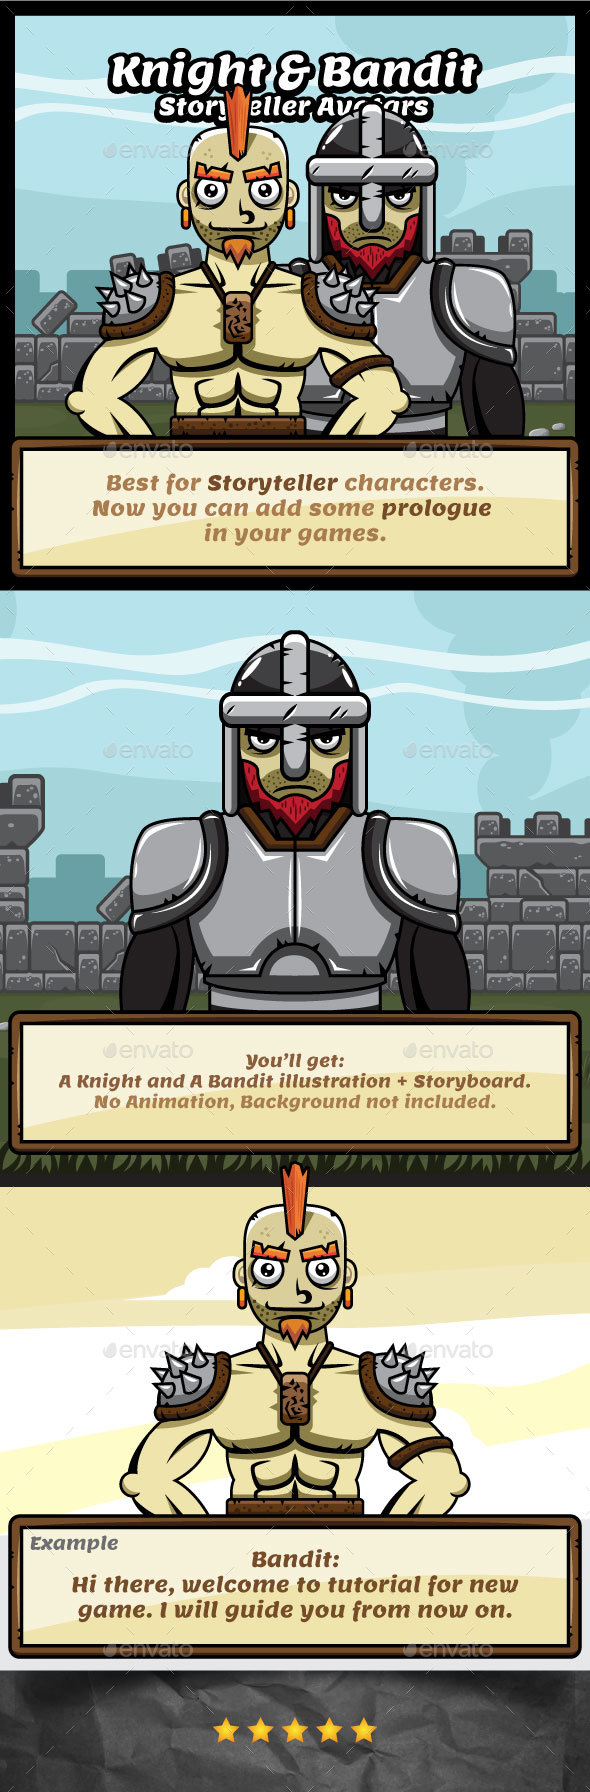 Storyteller Avatar - Knight and Bandit - Medieval Kingdom Theme